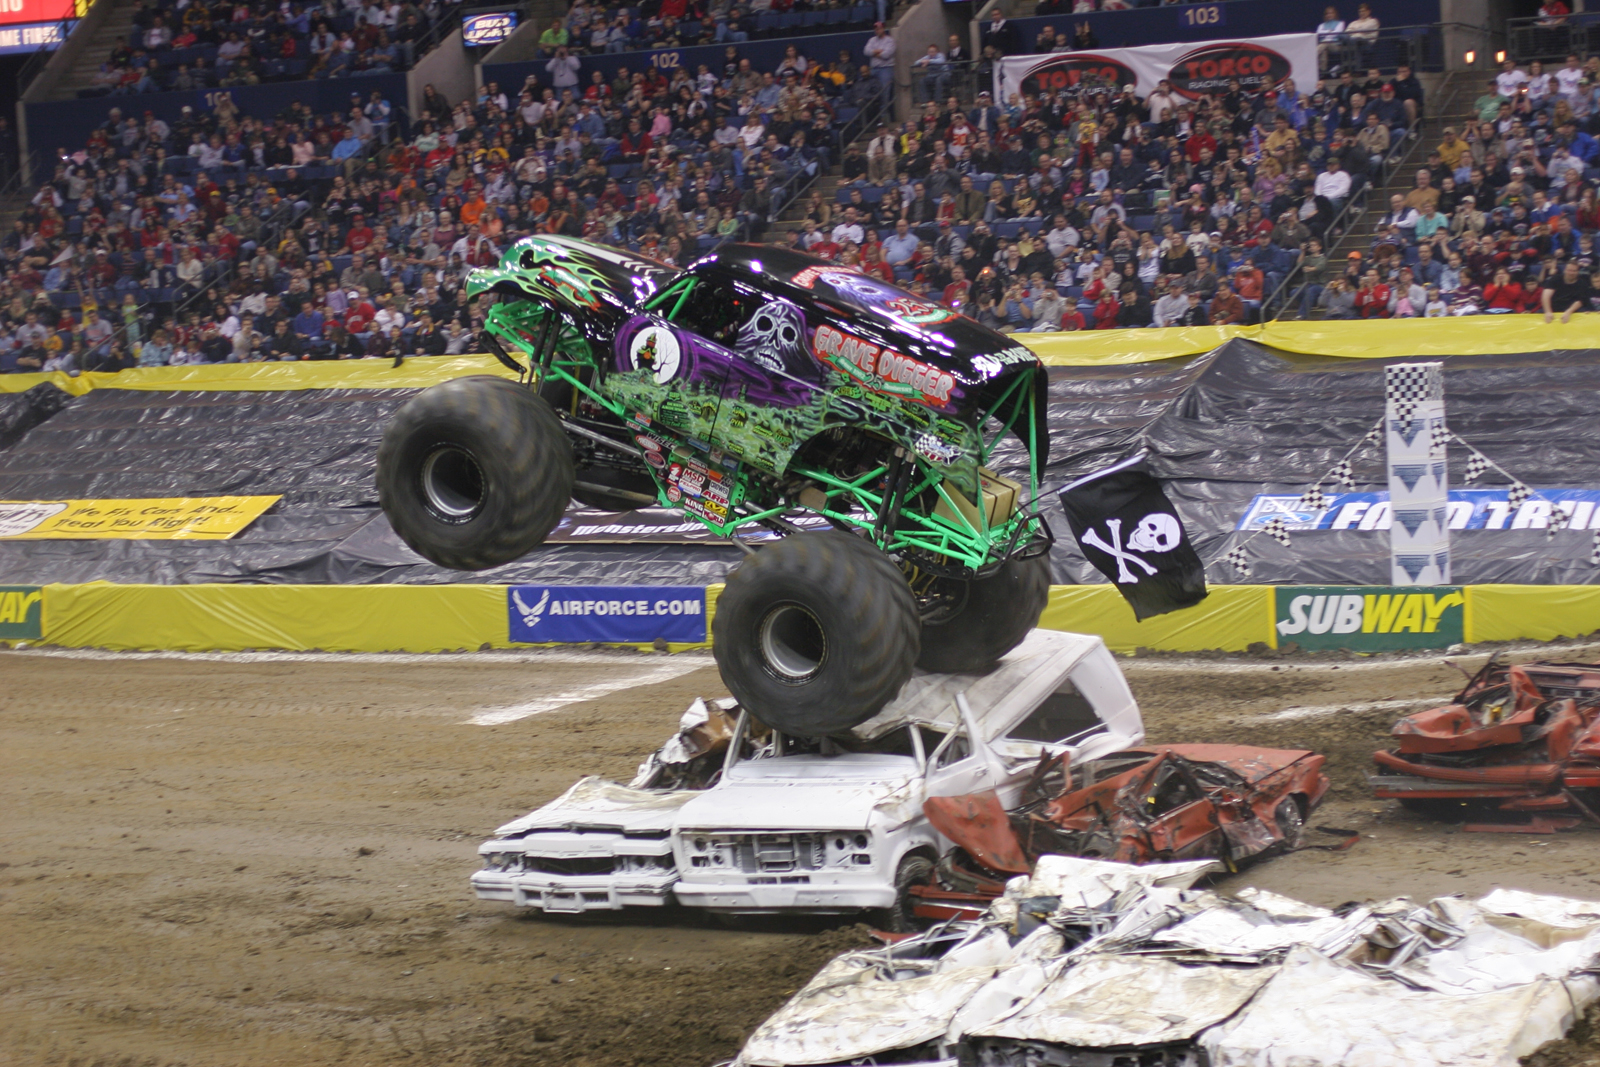 monstertrucks_wallpaper_008_1600_1067.jpg